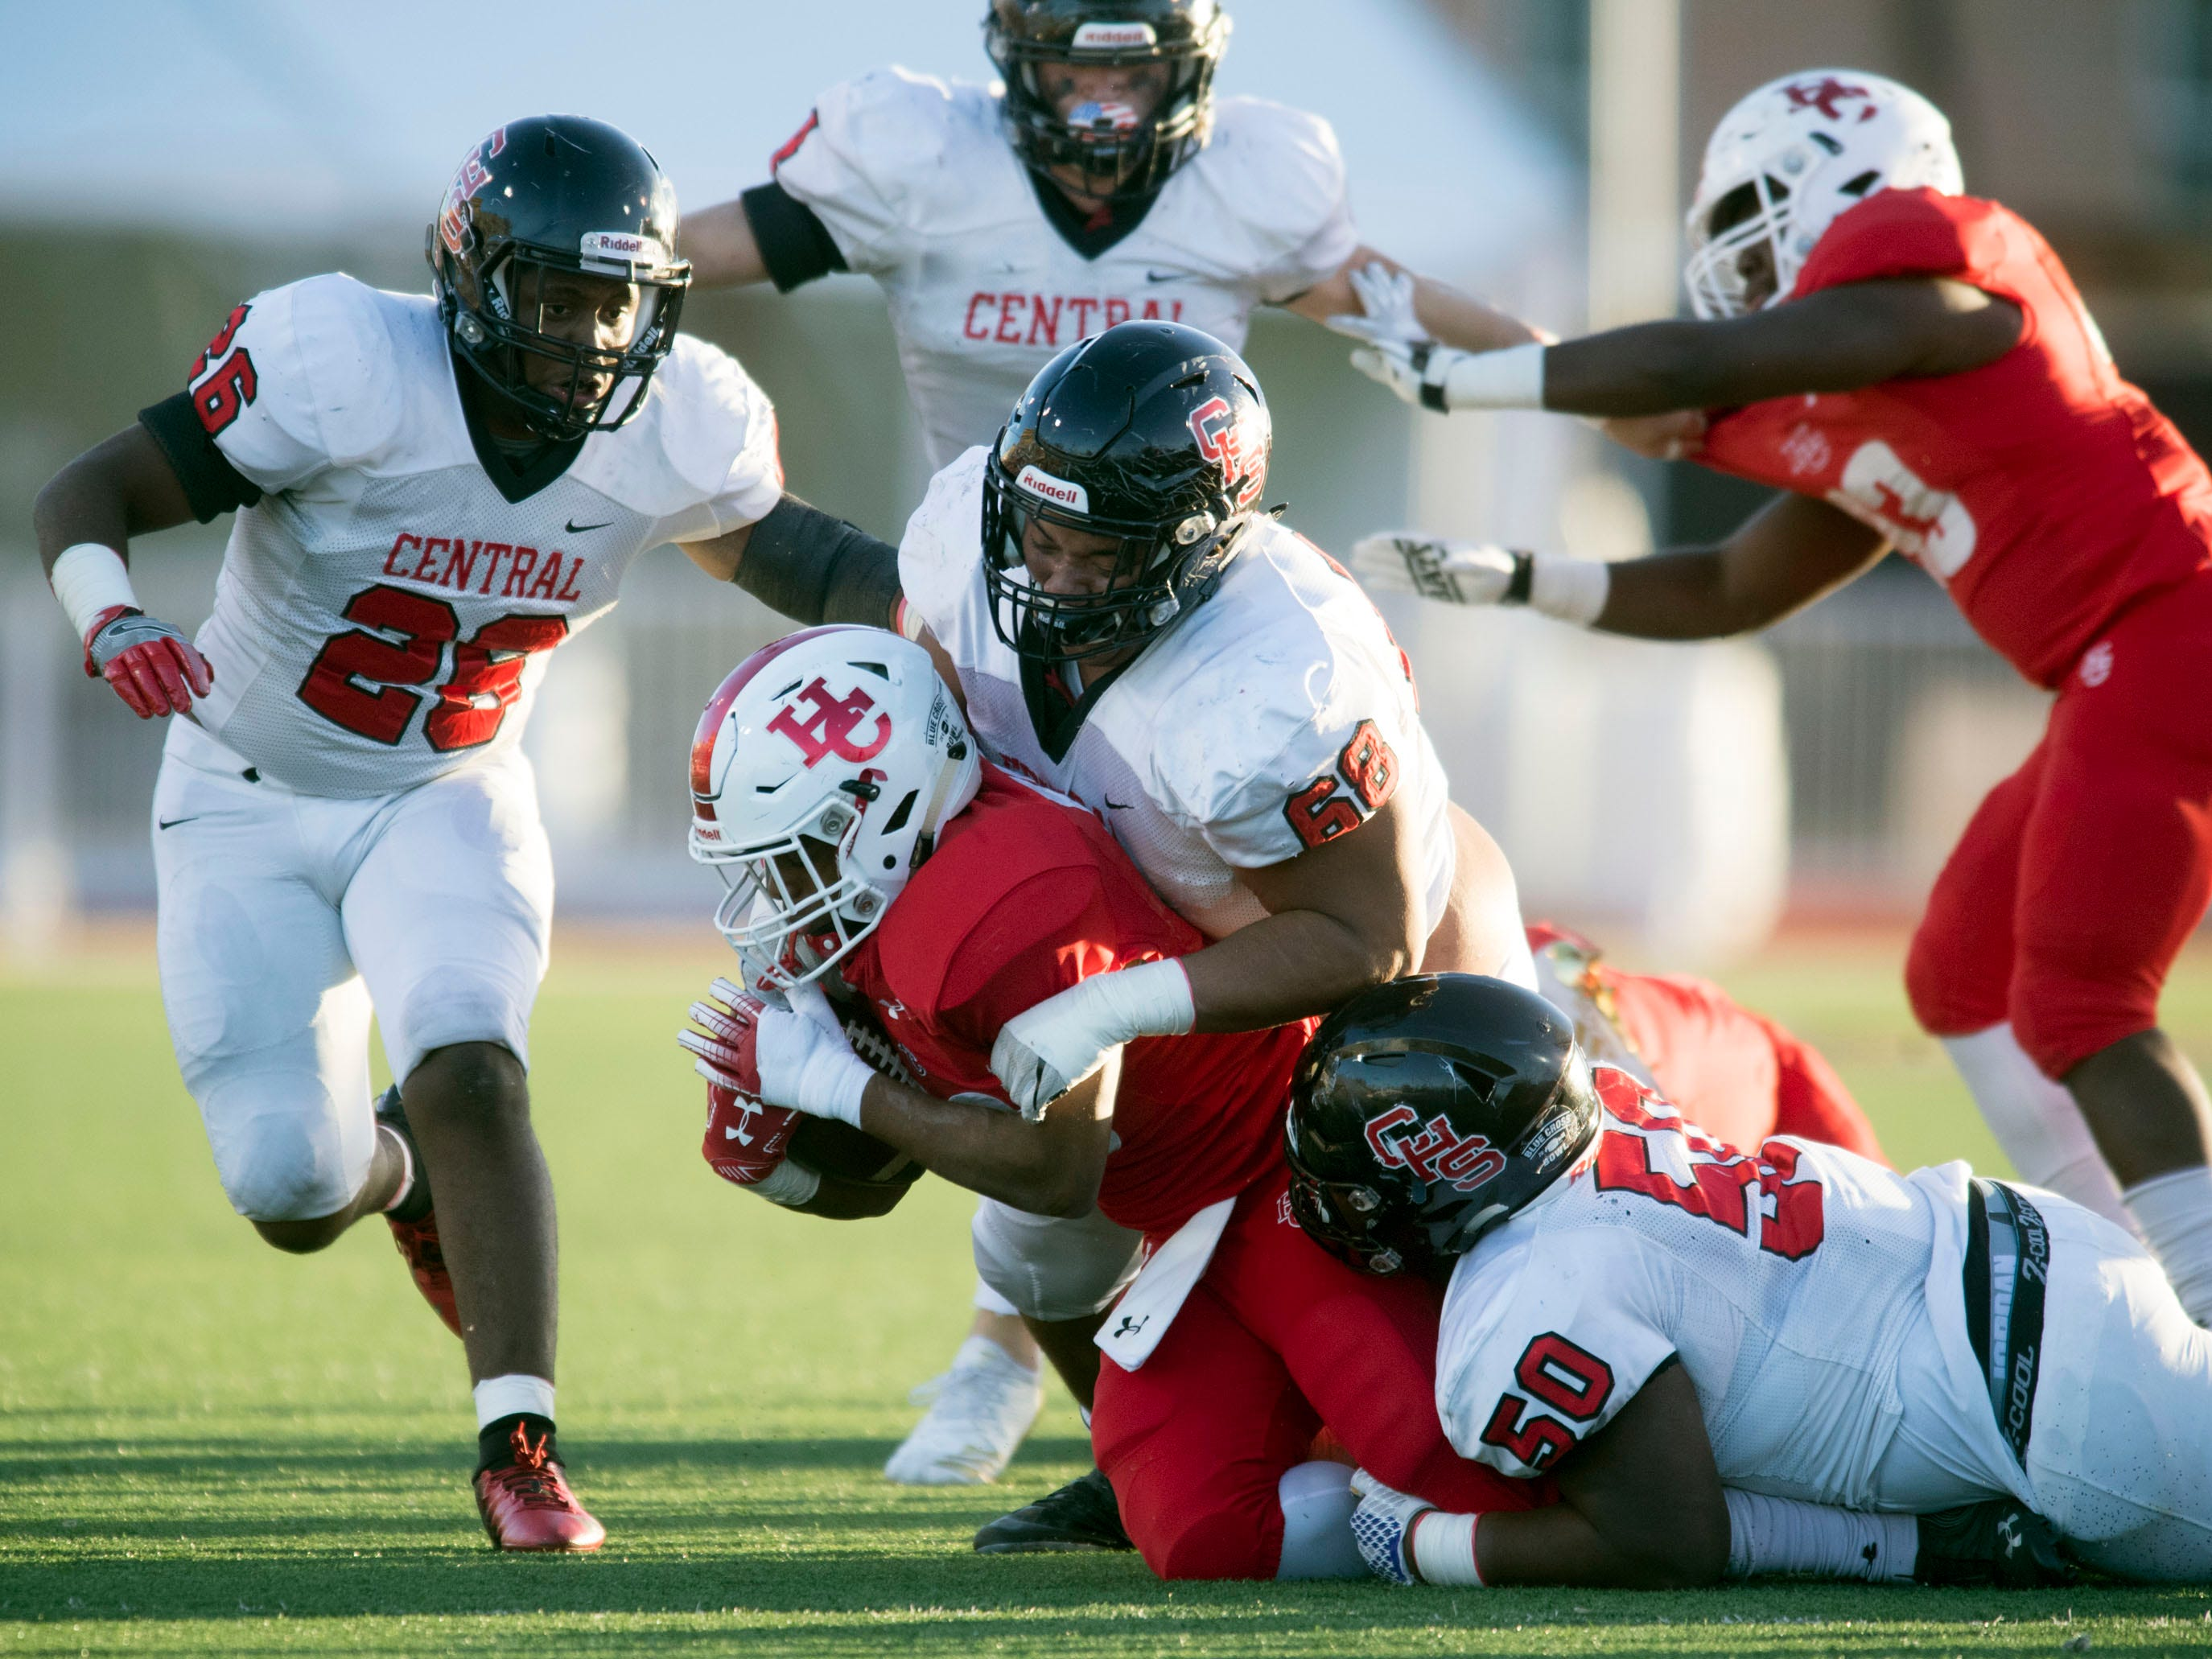 Henry County's Jermarcus Johnson (48) is tackled by Knoxville Central's Jakobi Troutman (68), and Jalynn Clemons (50) in the Class 5A BlueCross Bowl at Tucker Stadium on Sunday, December 2, 2018.